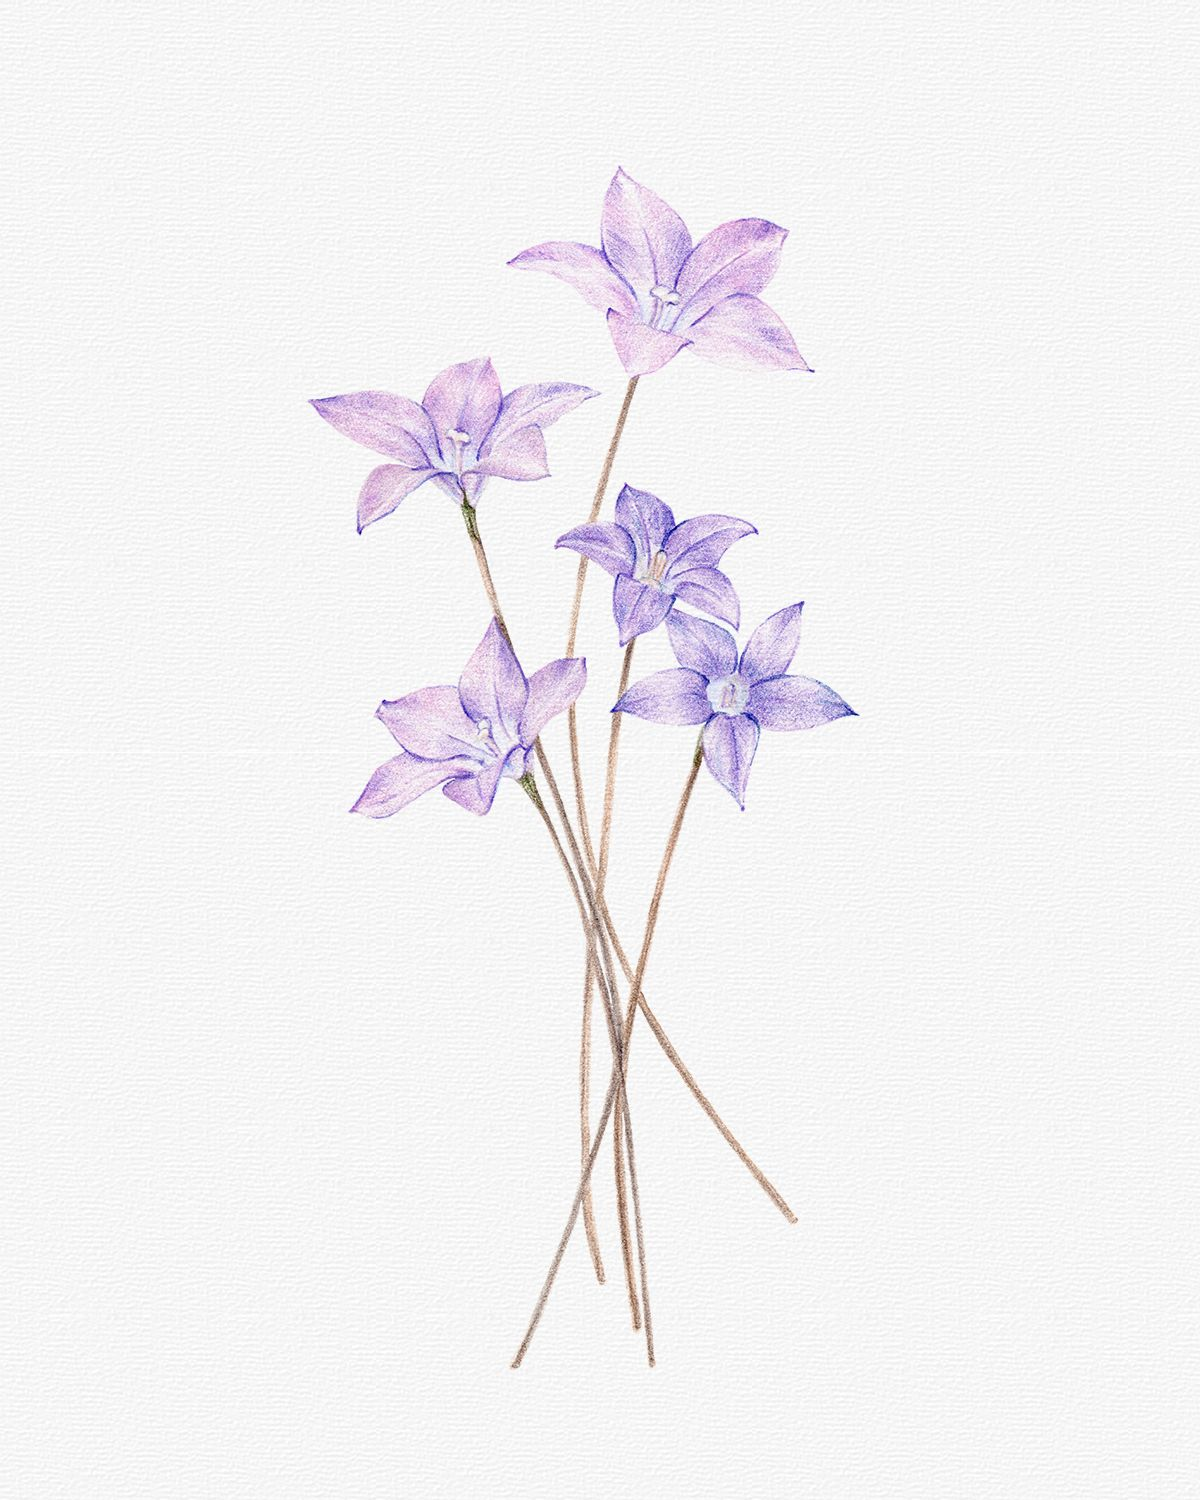 { ROYAL BLUEBELL } Wahlenbergia gloriosa, commonly known